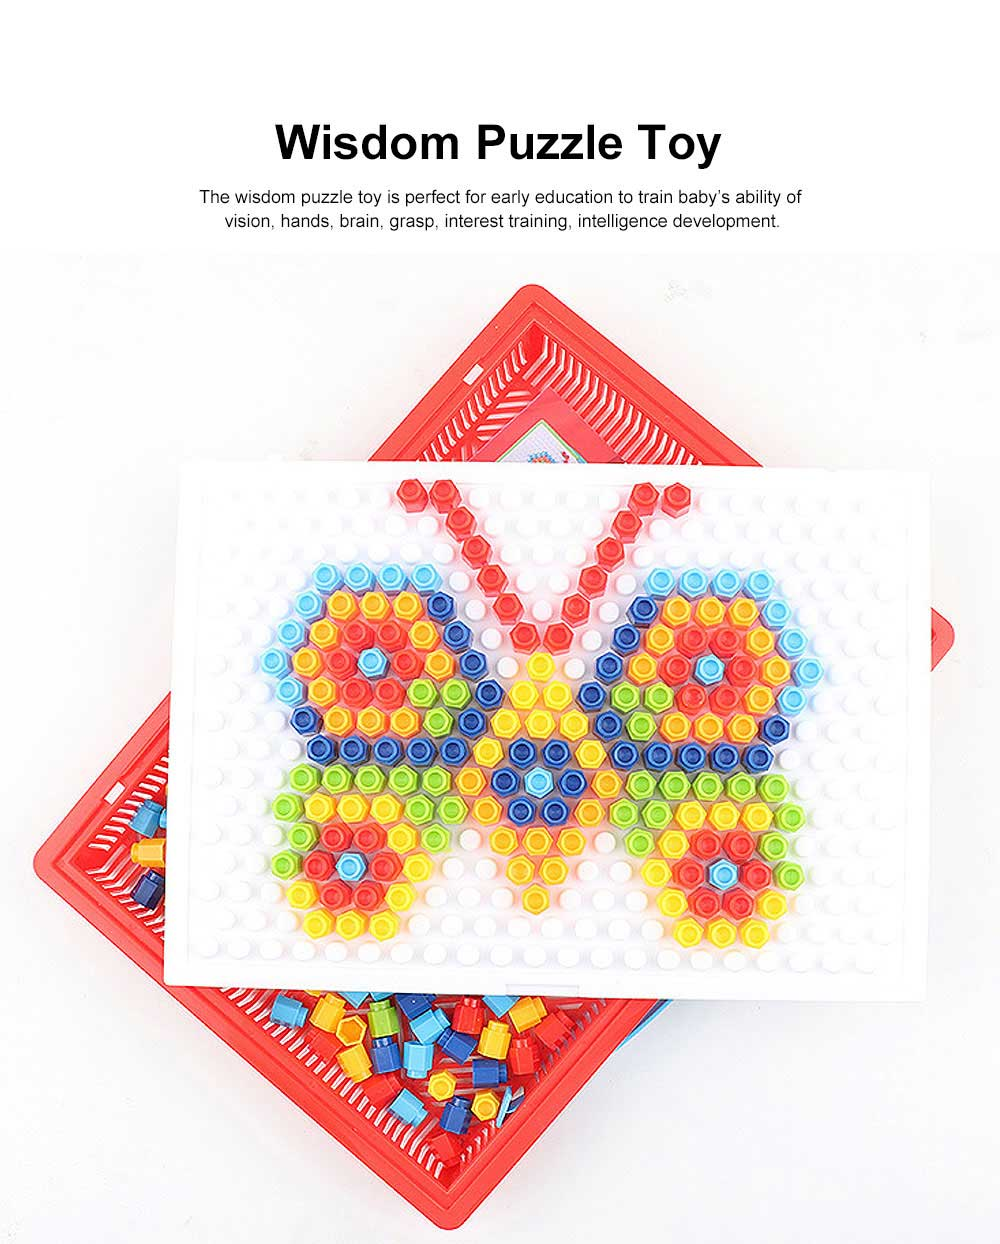 Children Puzzle Toy, Flat Puzzle Toy for Kids, Early Education Essential Toy Wisdom Puzzle Toy 2